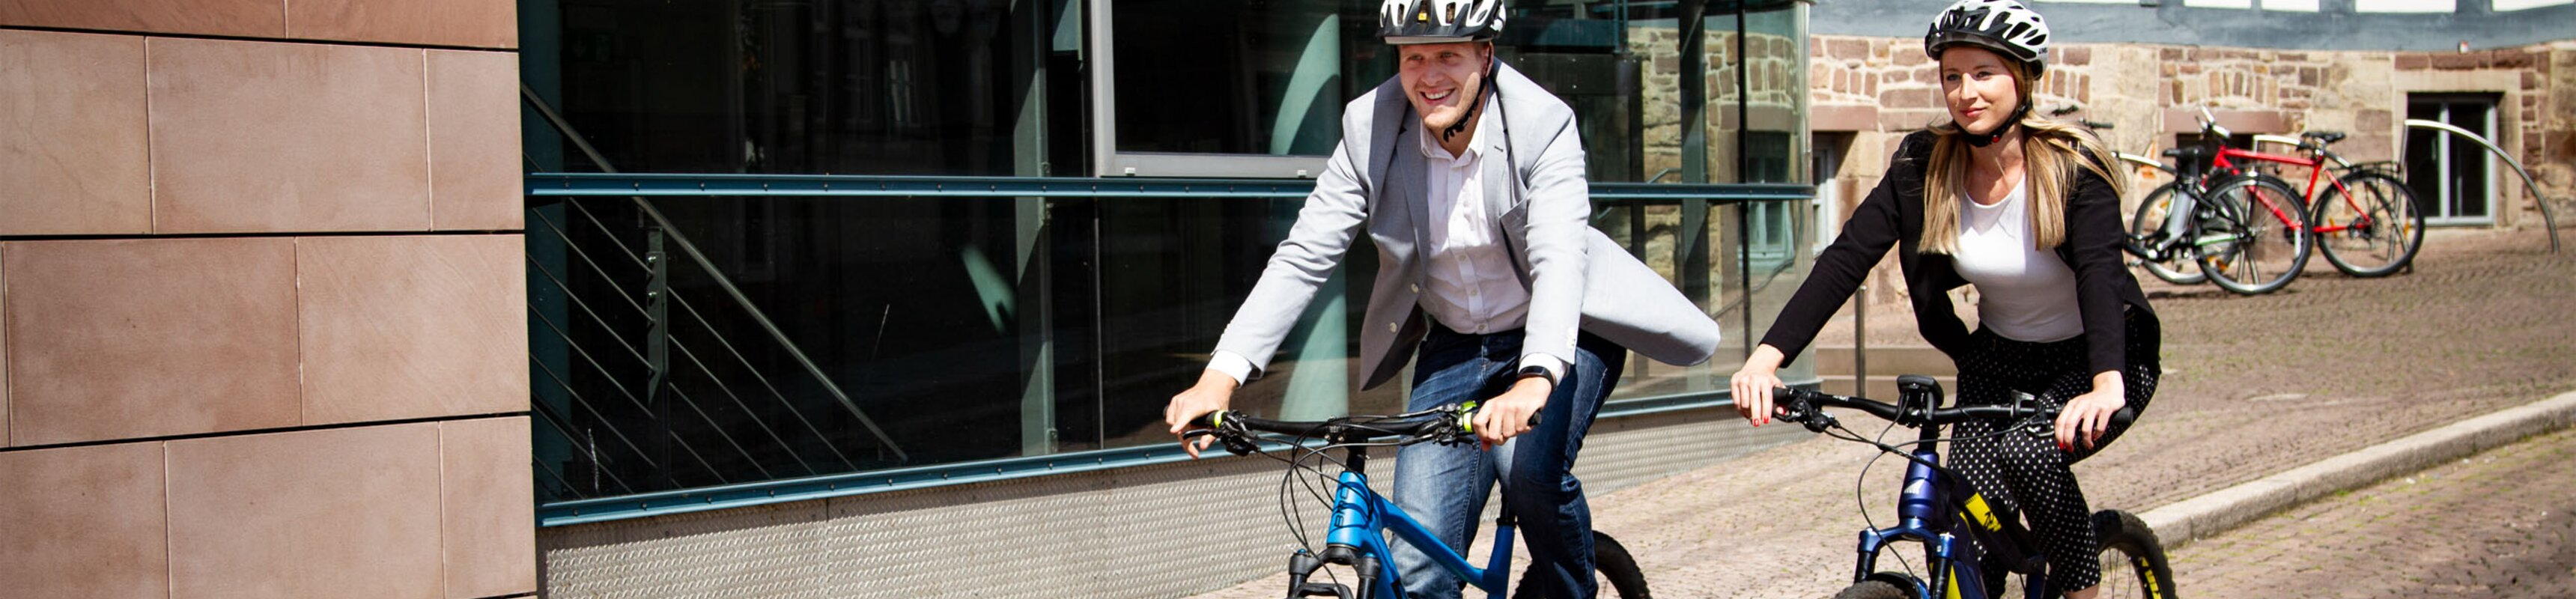 Bikeleasing-Service GmbH & Co. KG | © Bikeleasing-Service GmbH & Co. KG